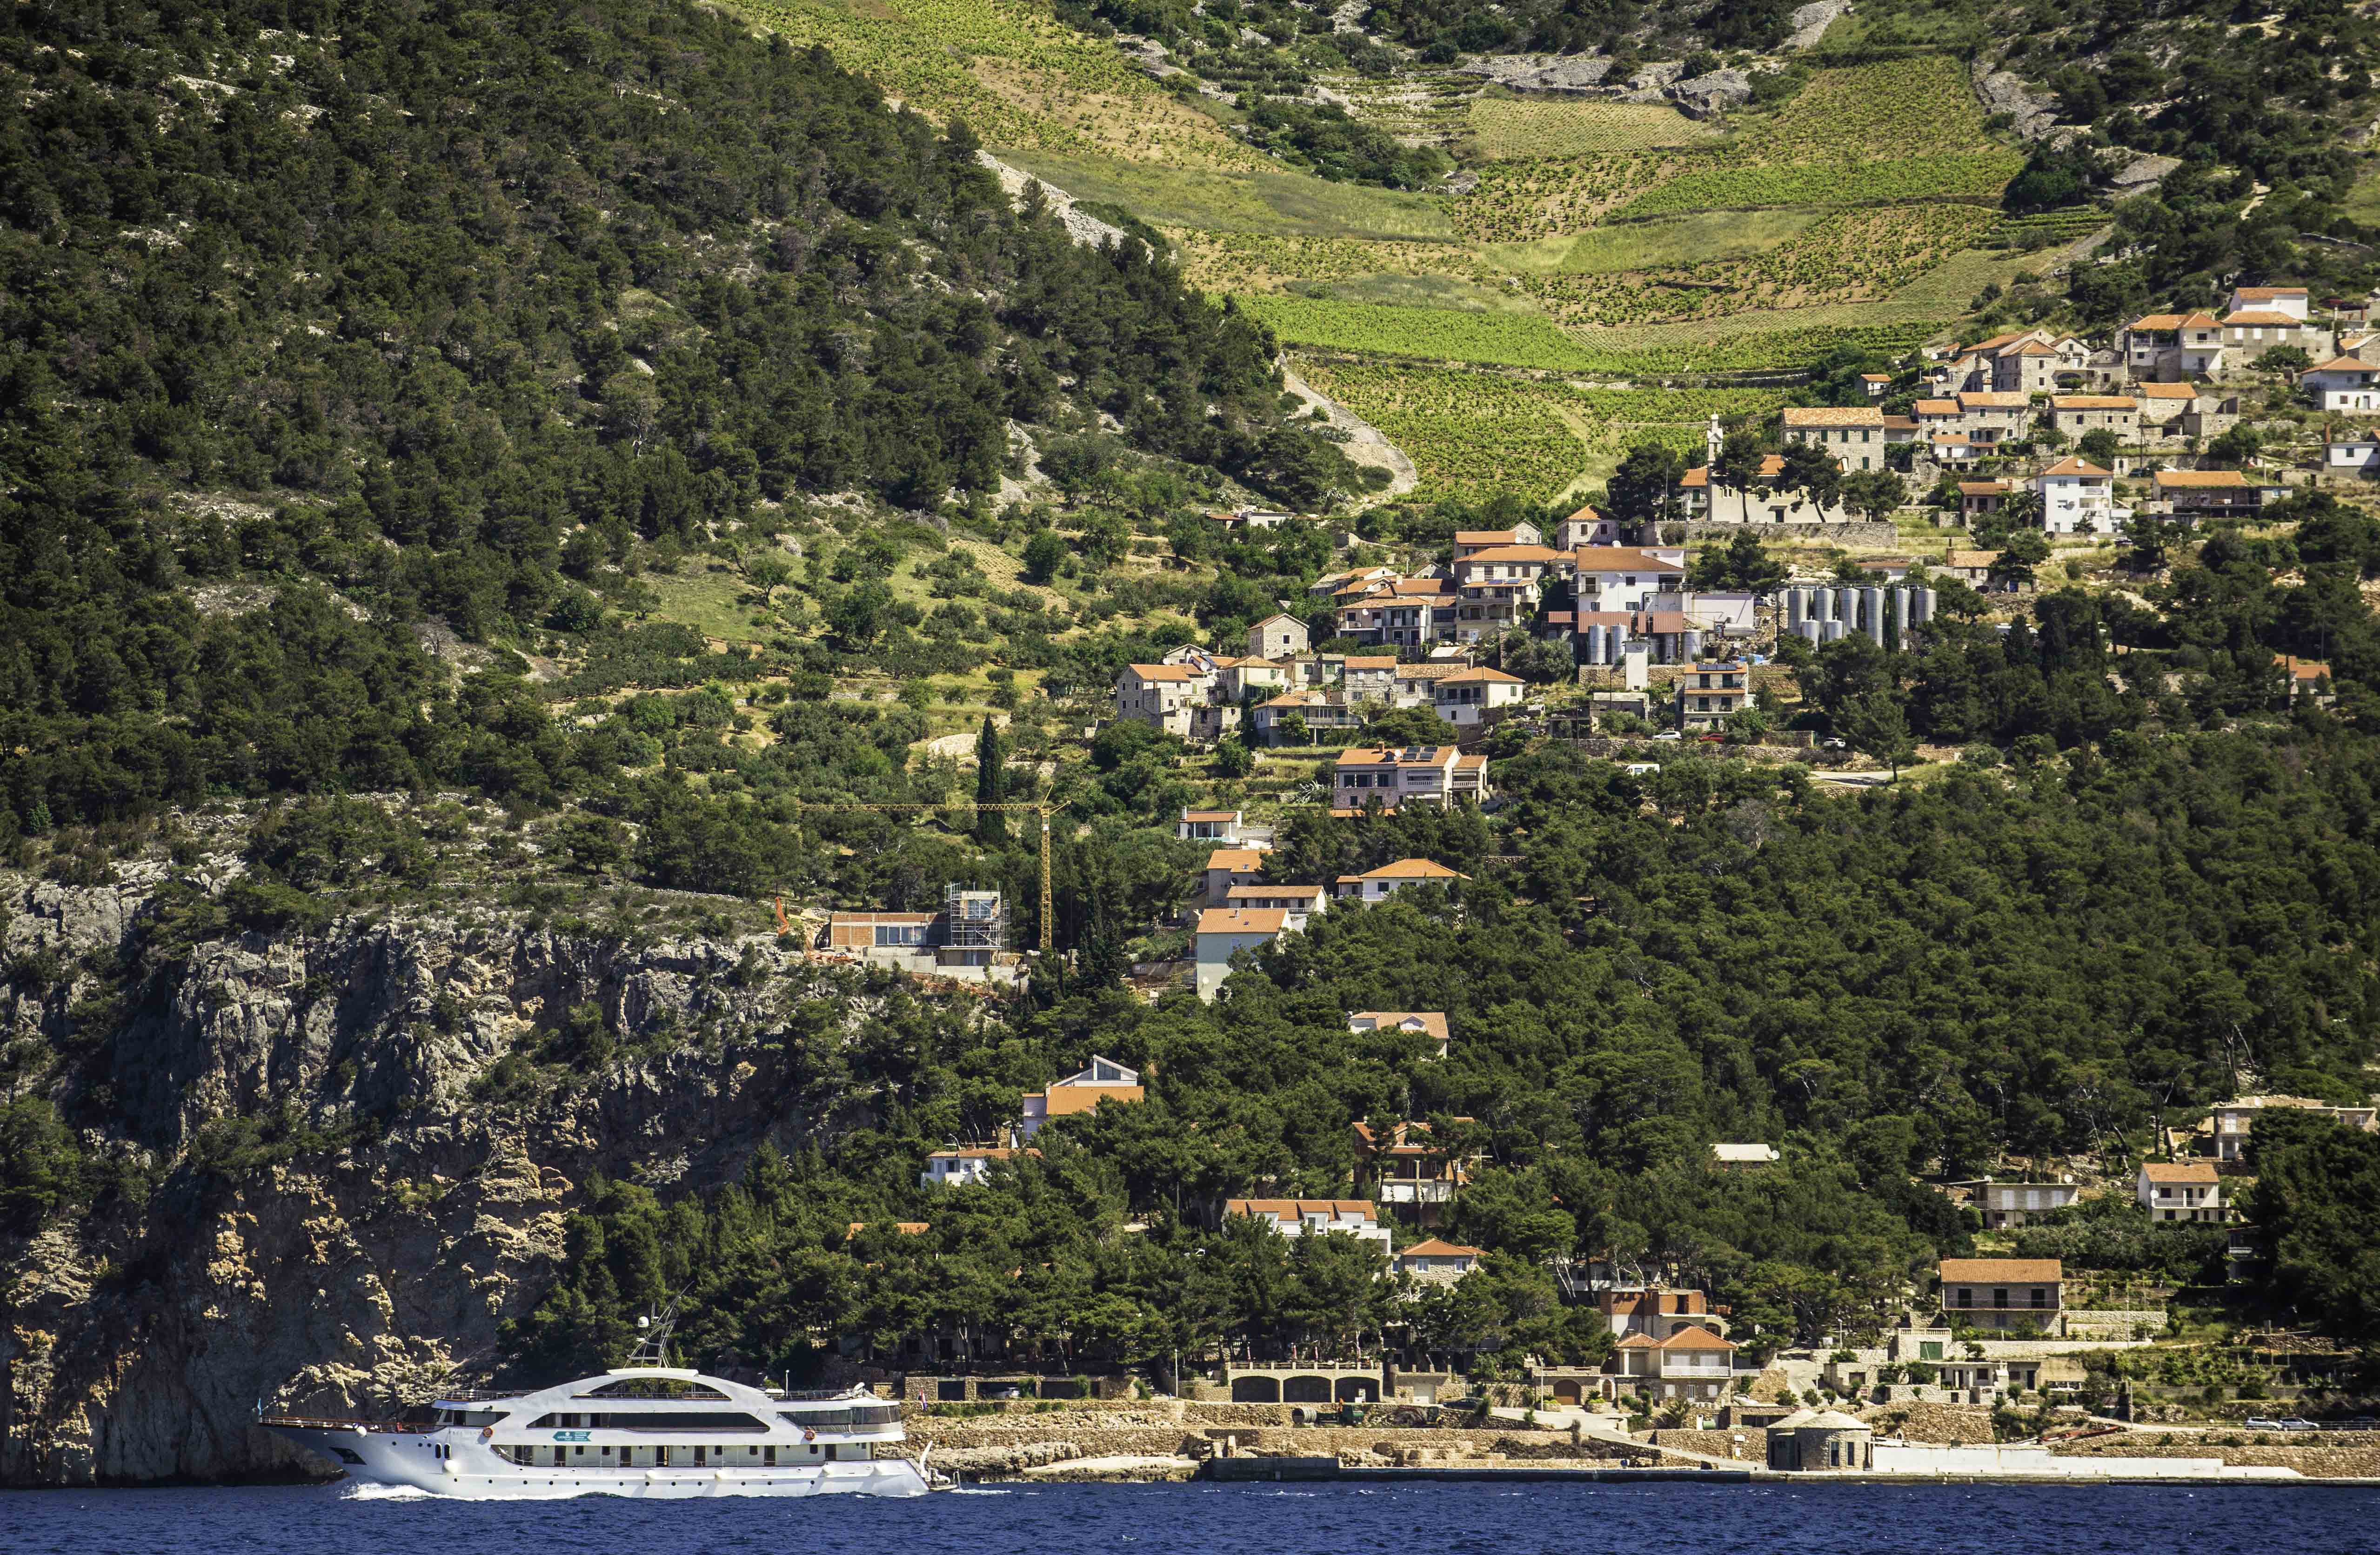 Wine, Olives and Cruise Ships - the life of the Dalmatian Islands, Hvar, Croatia